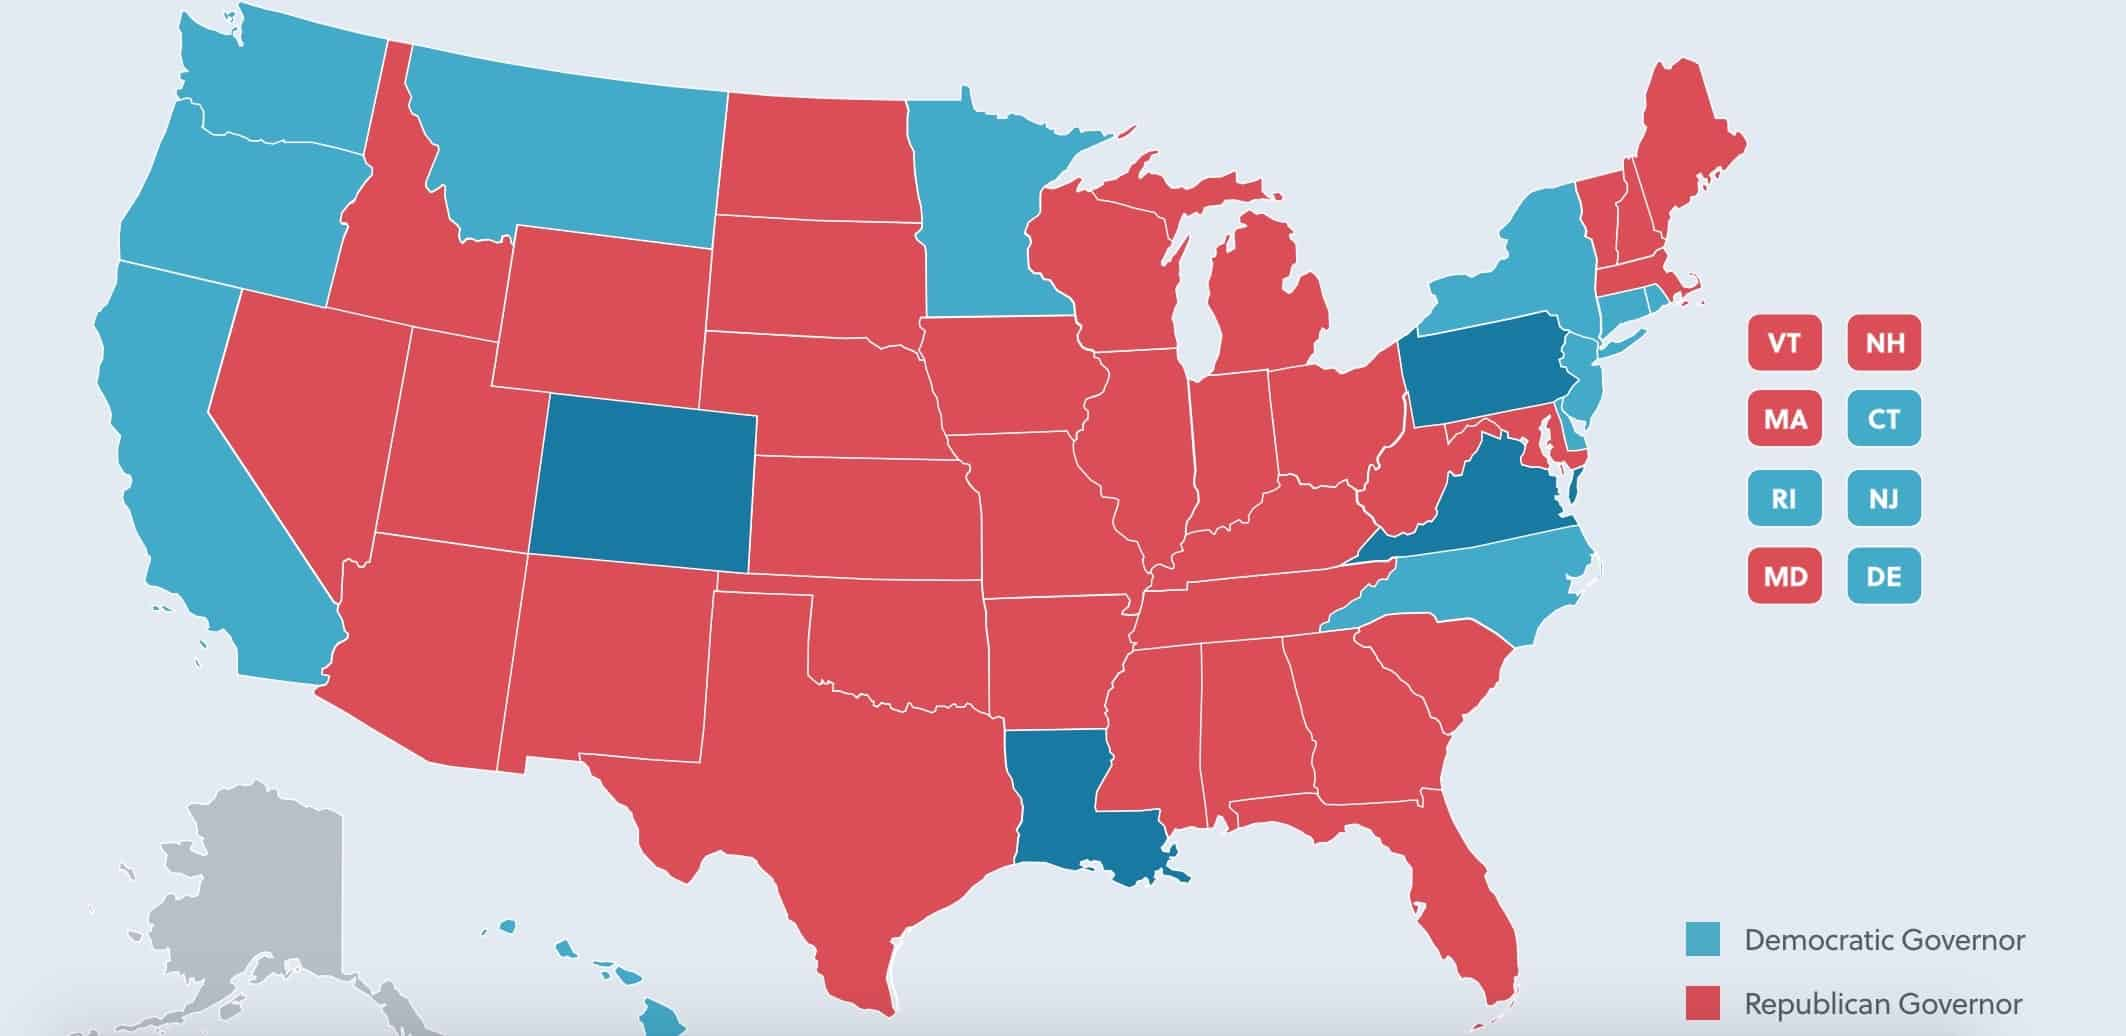 2018 Political Map of the U.S. Governor Races